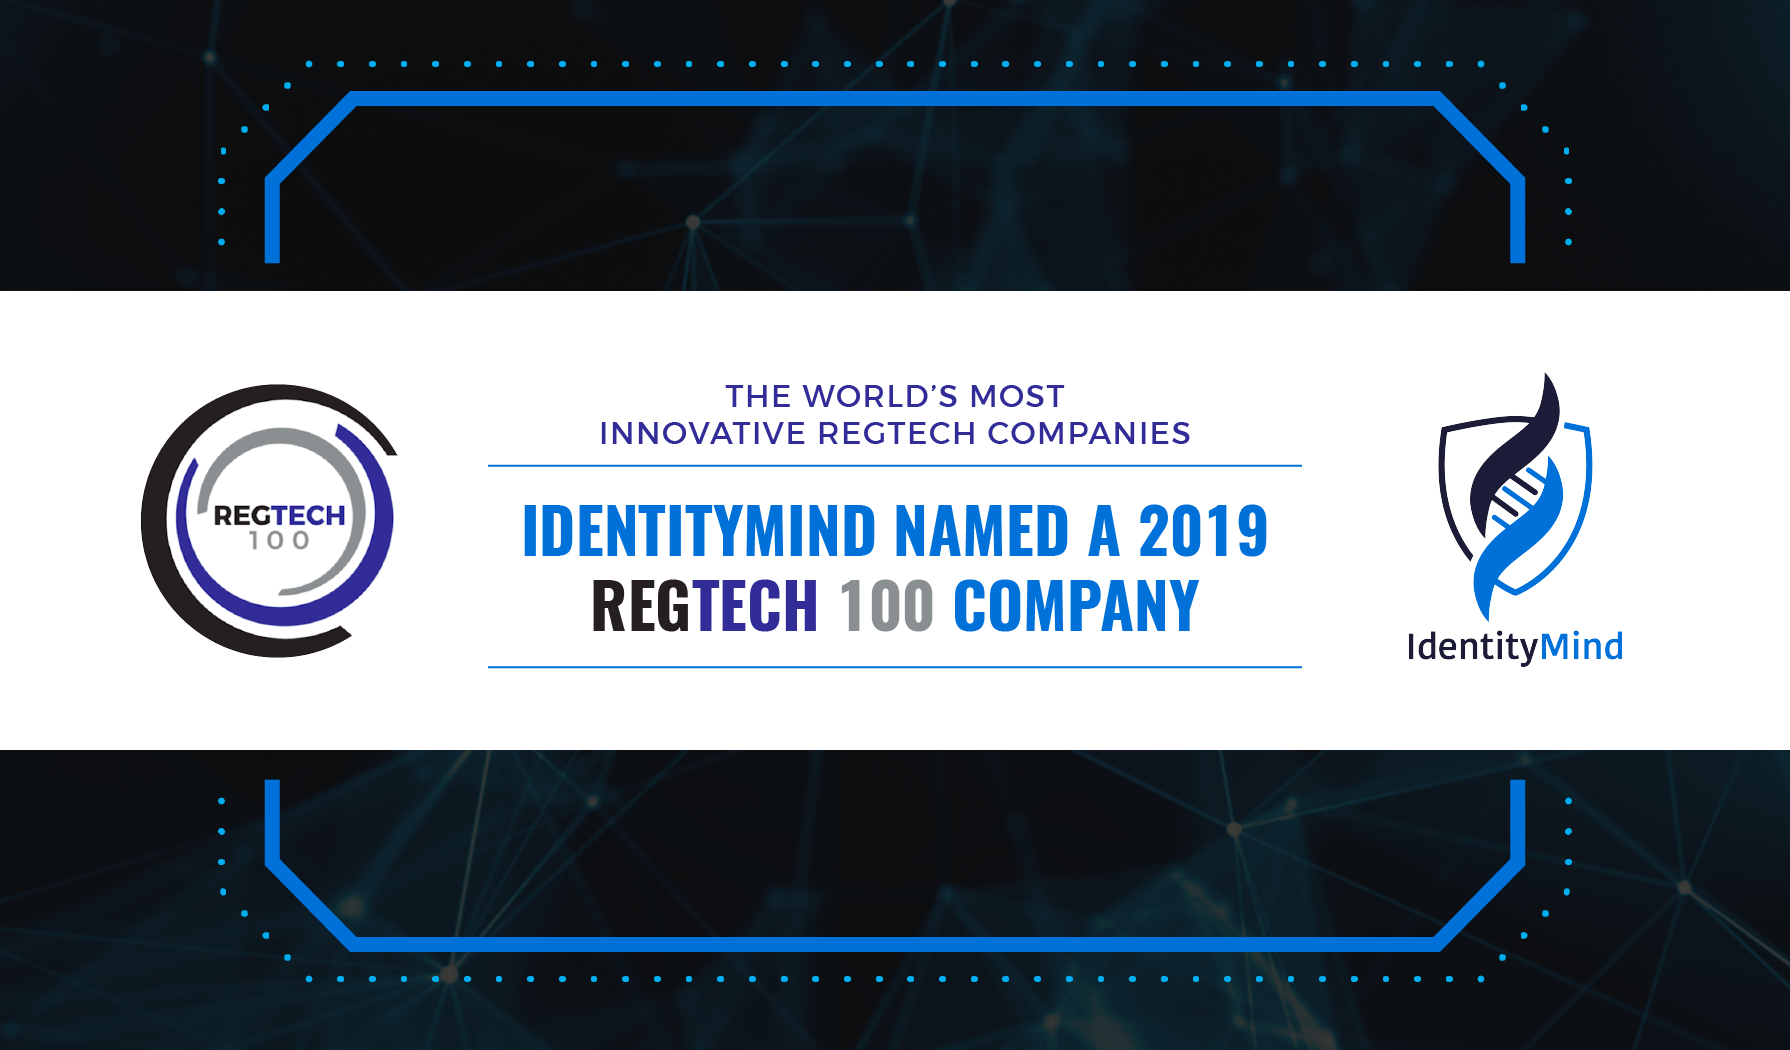 Digital Identities Pioneer IdentityMind Named to RegTech 100 for the Second Consecutive Year